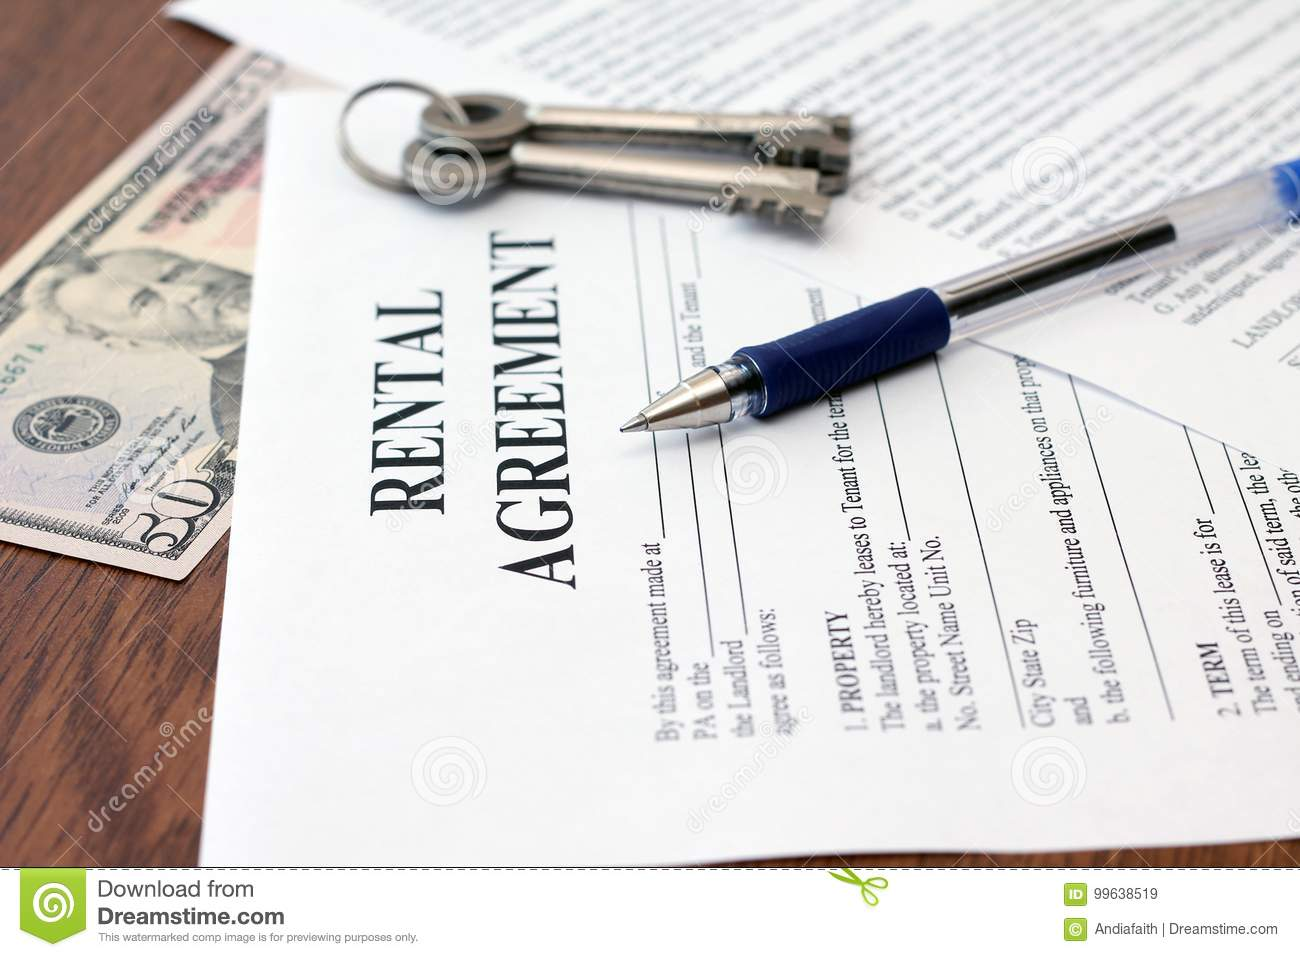 Residential Tenancy Agreement With Money And Keys Stock Image